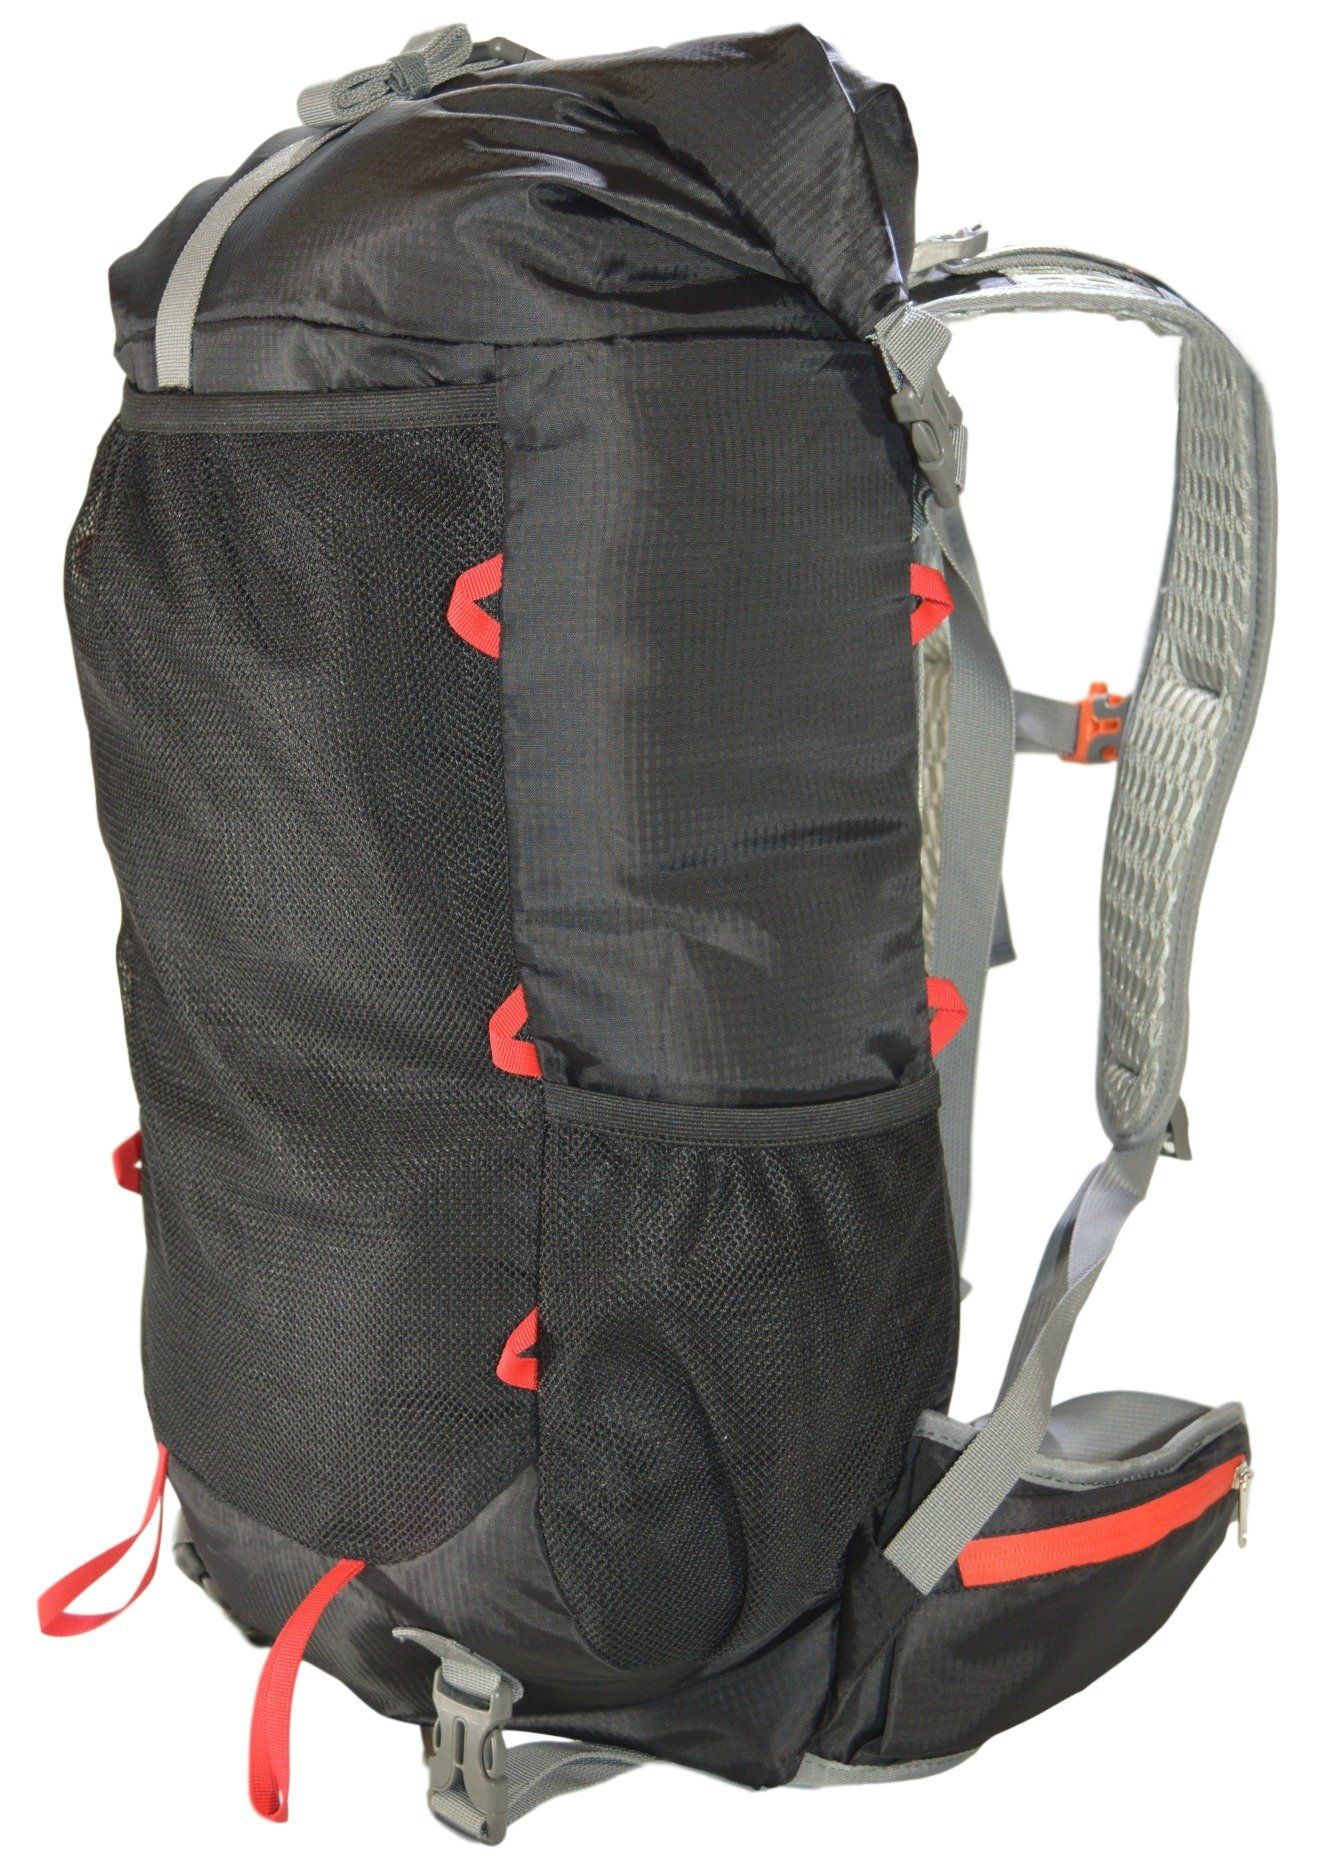 GoBackTrail Roll Top Black Backpack - ULTRALIGHT 35L - 50L with Removable  Internal Frame – Always e2e0a2ee55781